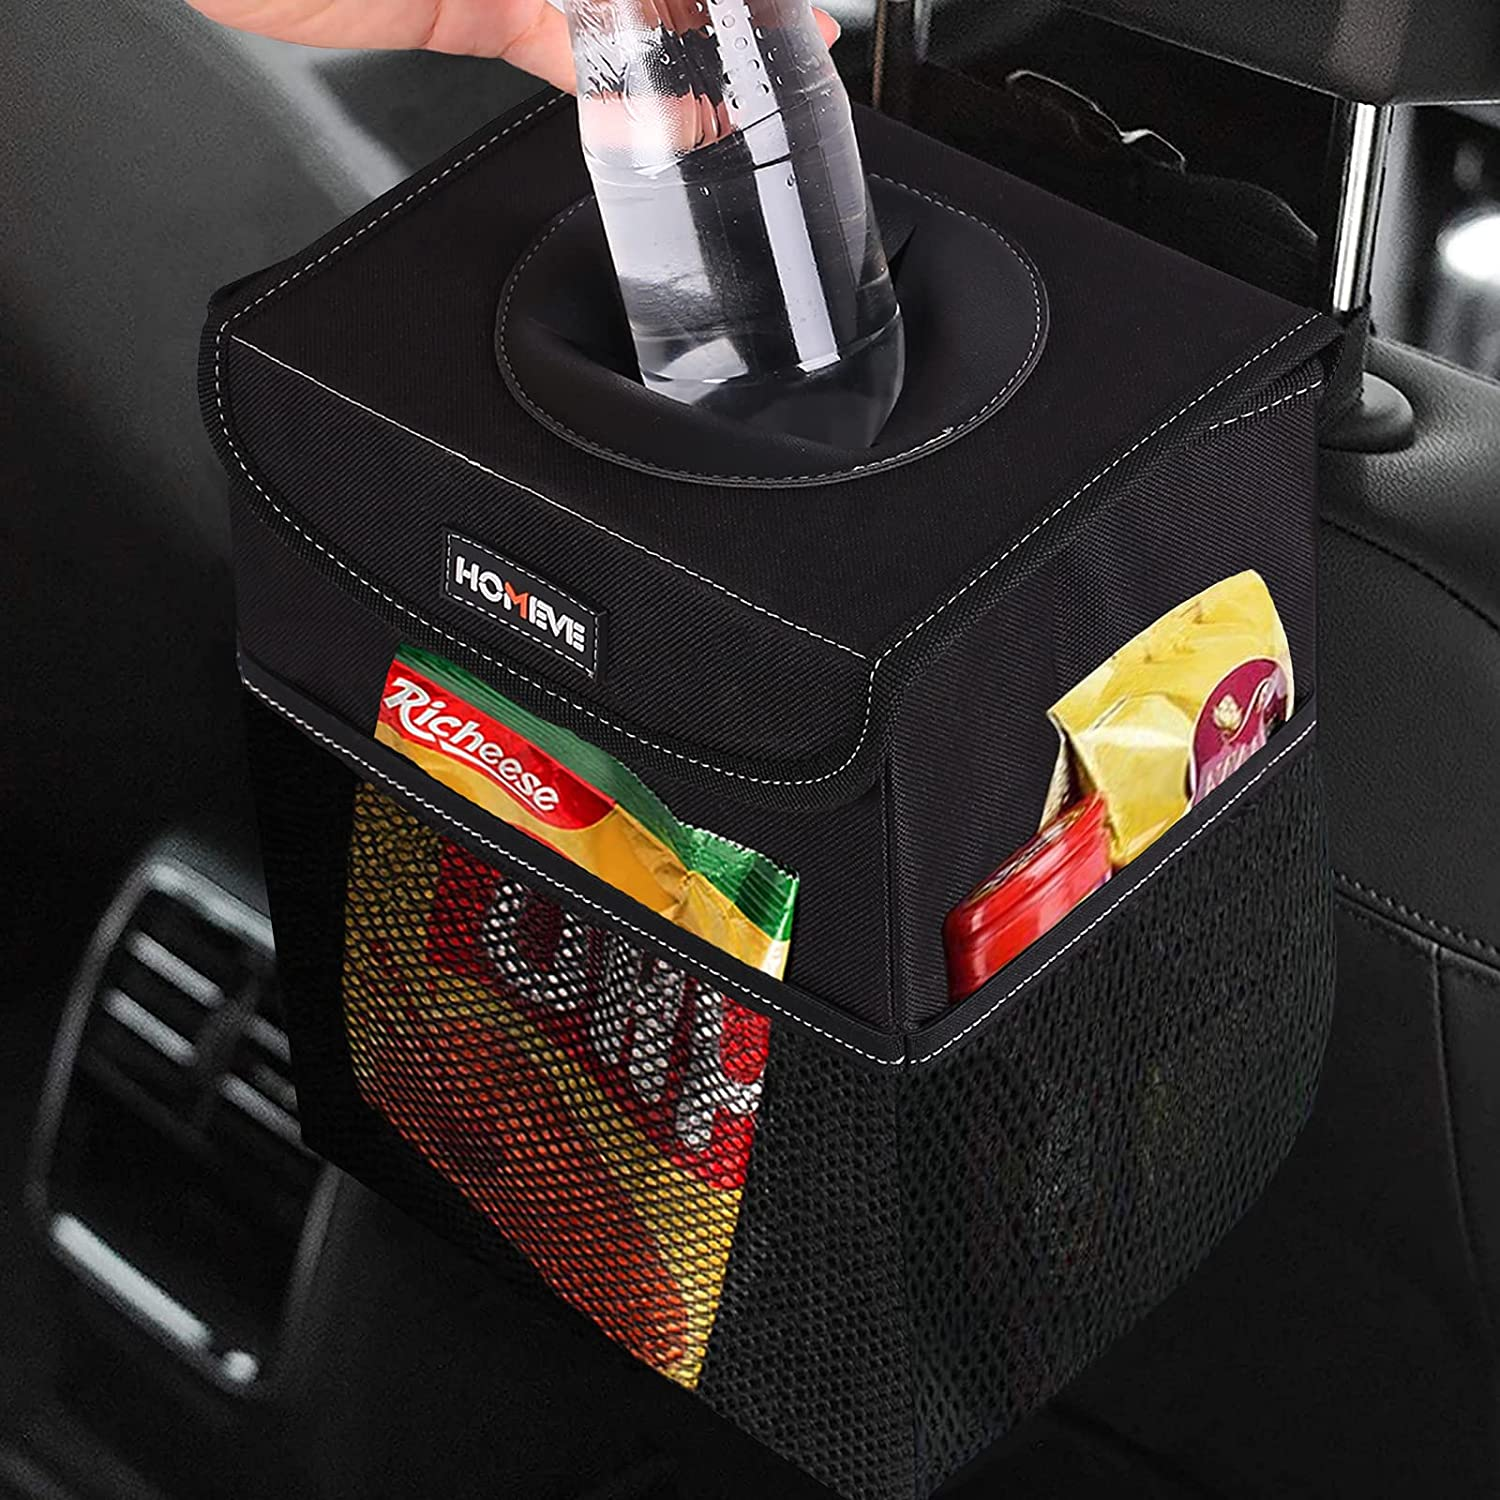 Multipurpose Car Trash Can, Garbage Organizer with Lid & Pockets